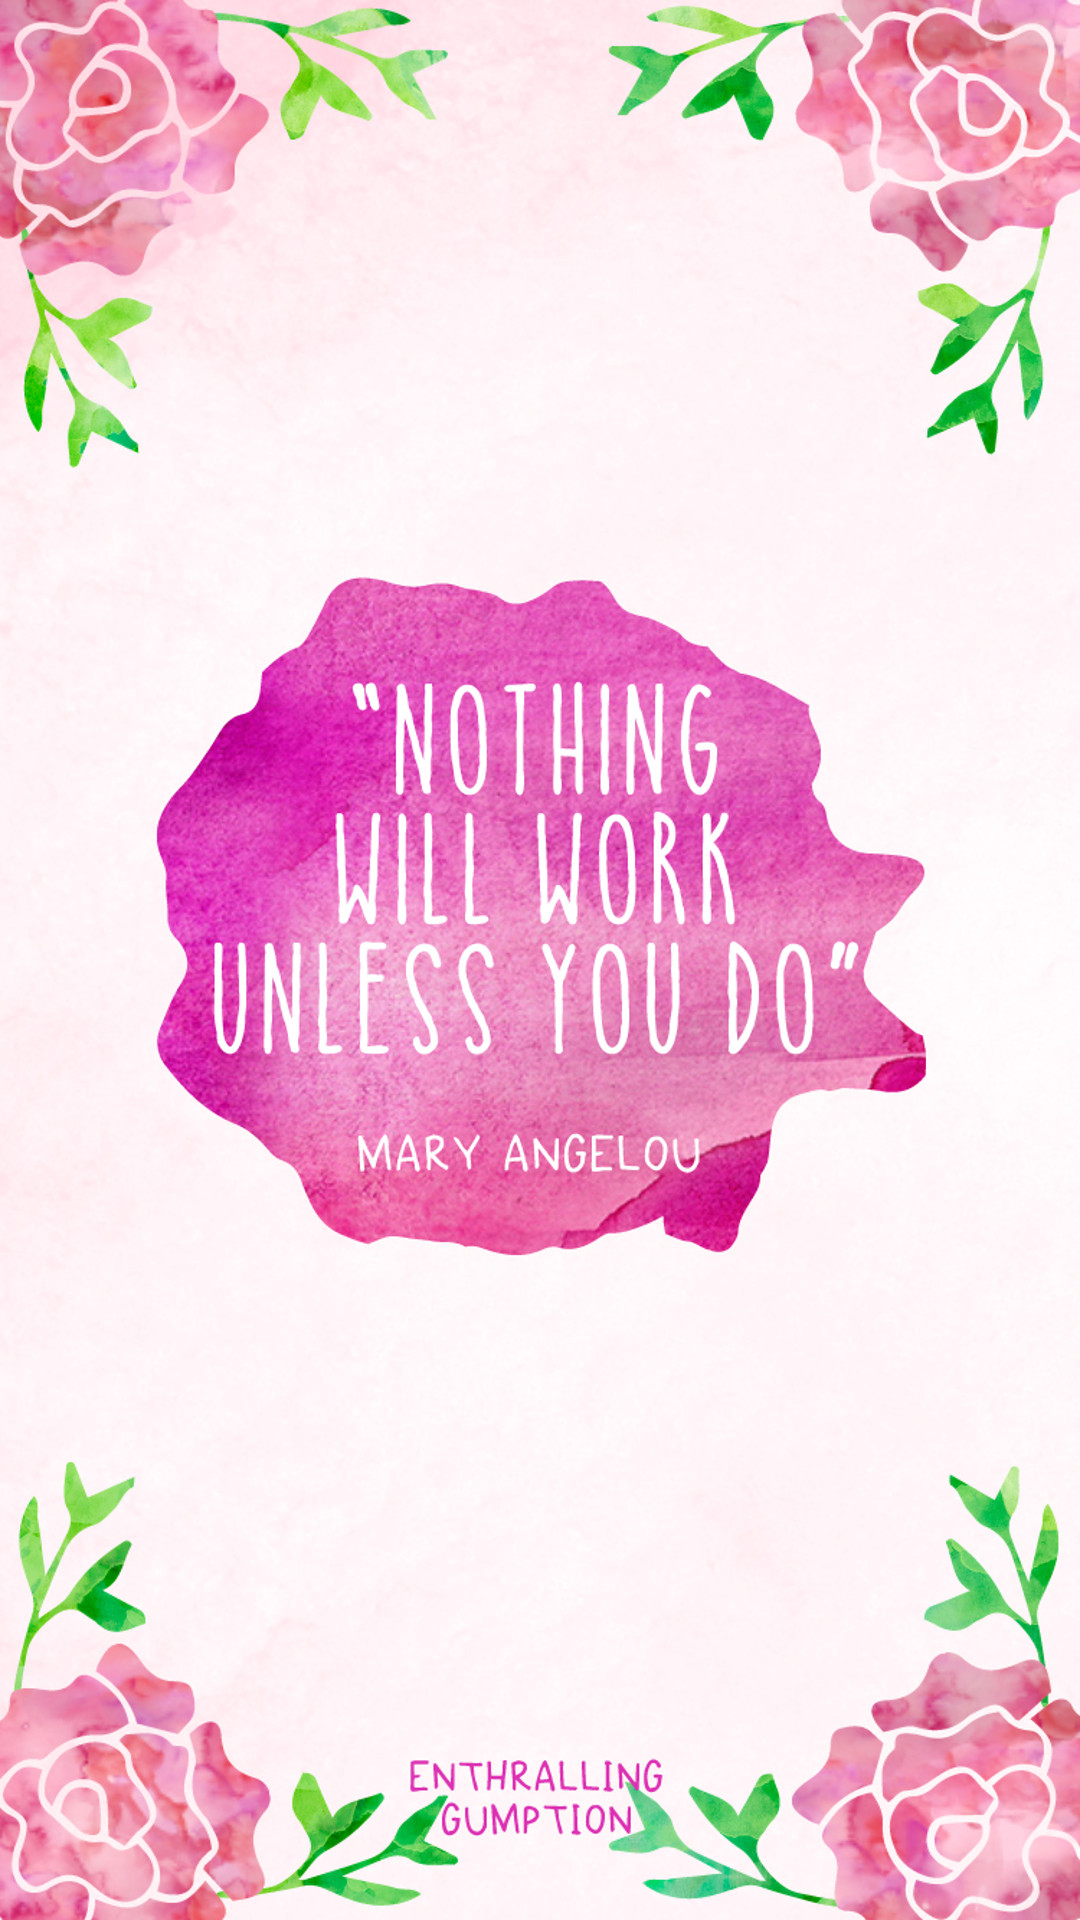 Nothing will work unless you do – Maya Angelou quote